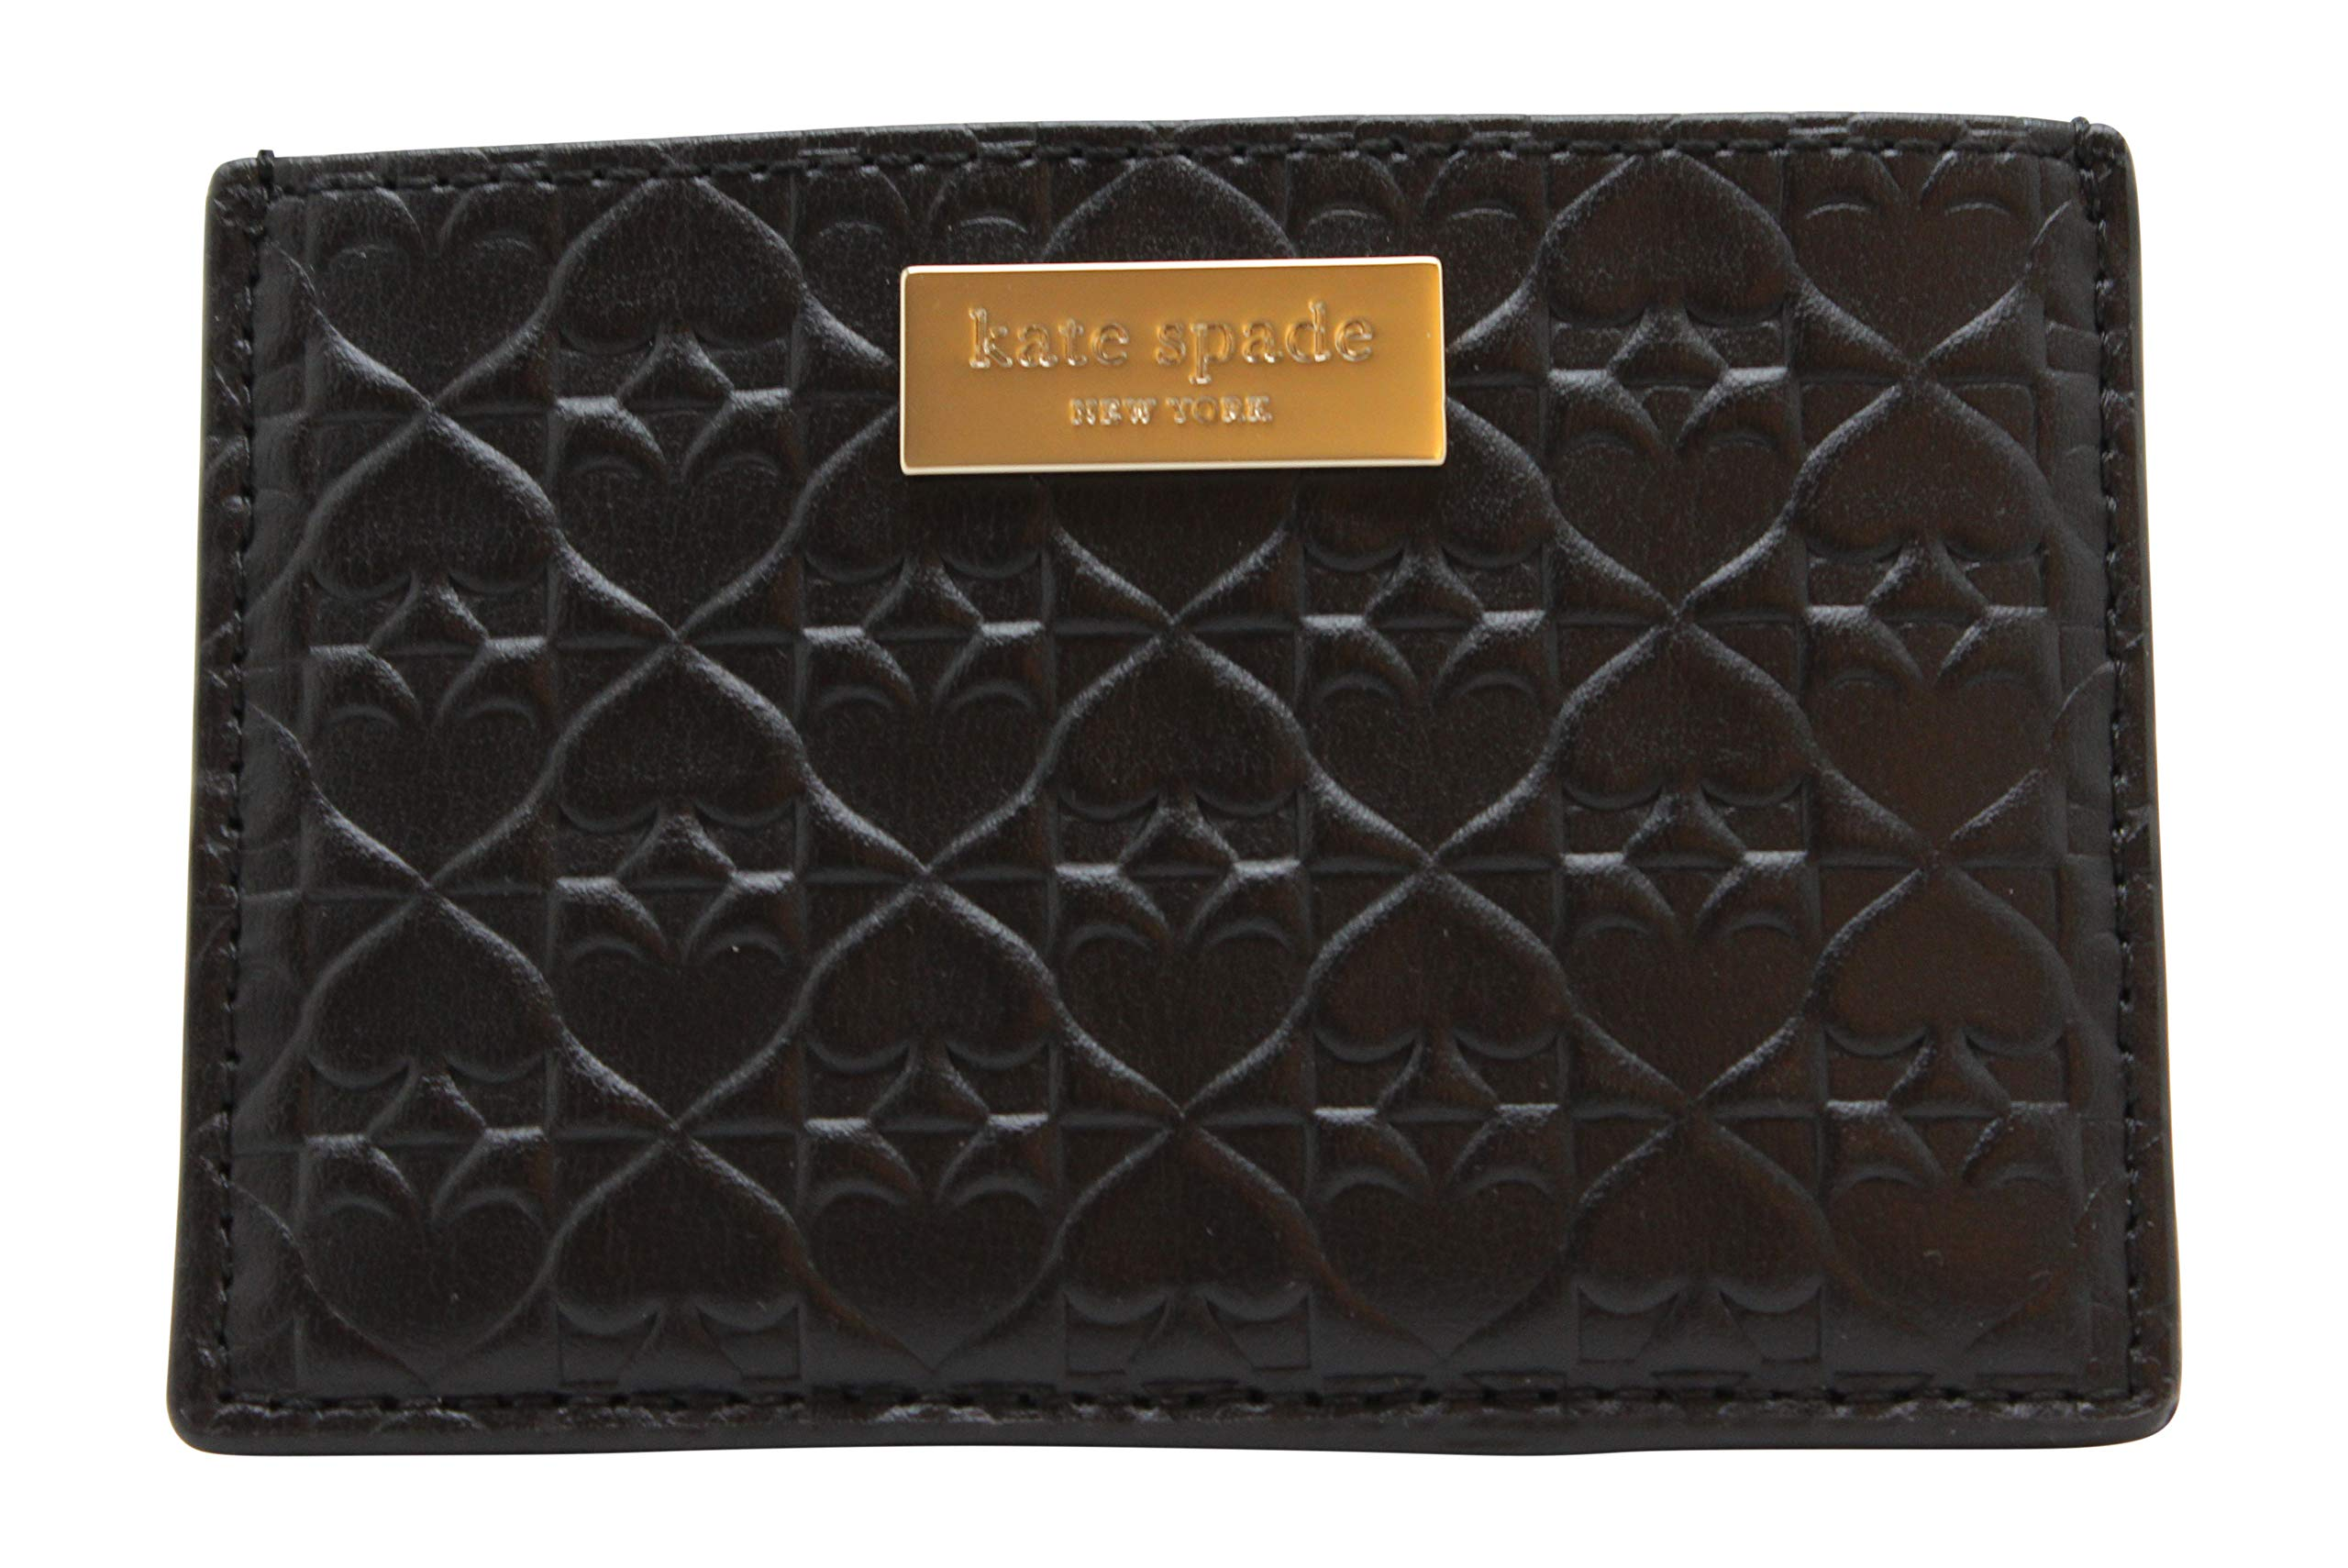 Kate Spade New York  Graham Embossed Wallet Business Card Holder Credit Card Case Black ,Small  by Kate Spade New York